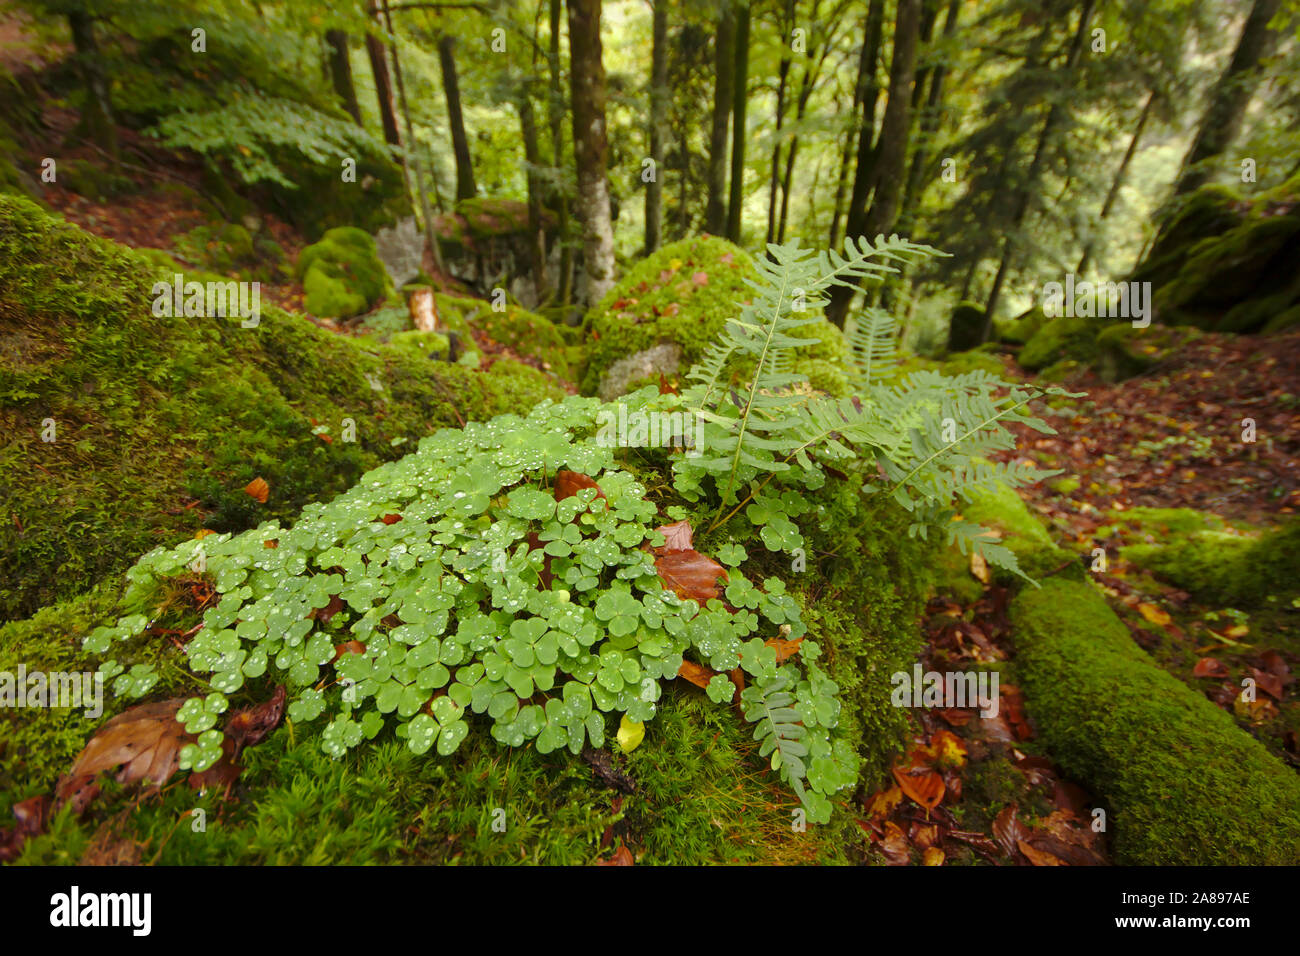 Clover and moss, Wehraschlucht, Bannwald,  autumn, Black Forest, Germany Stock Photo